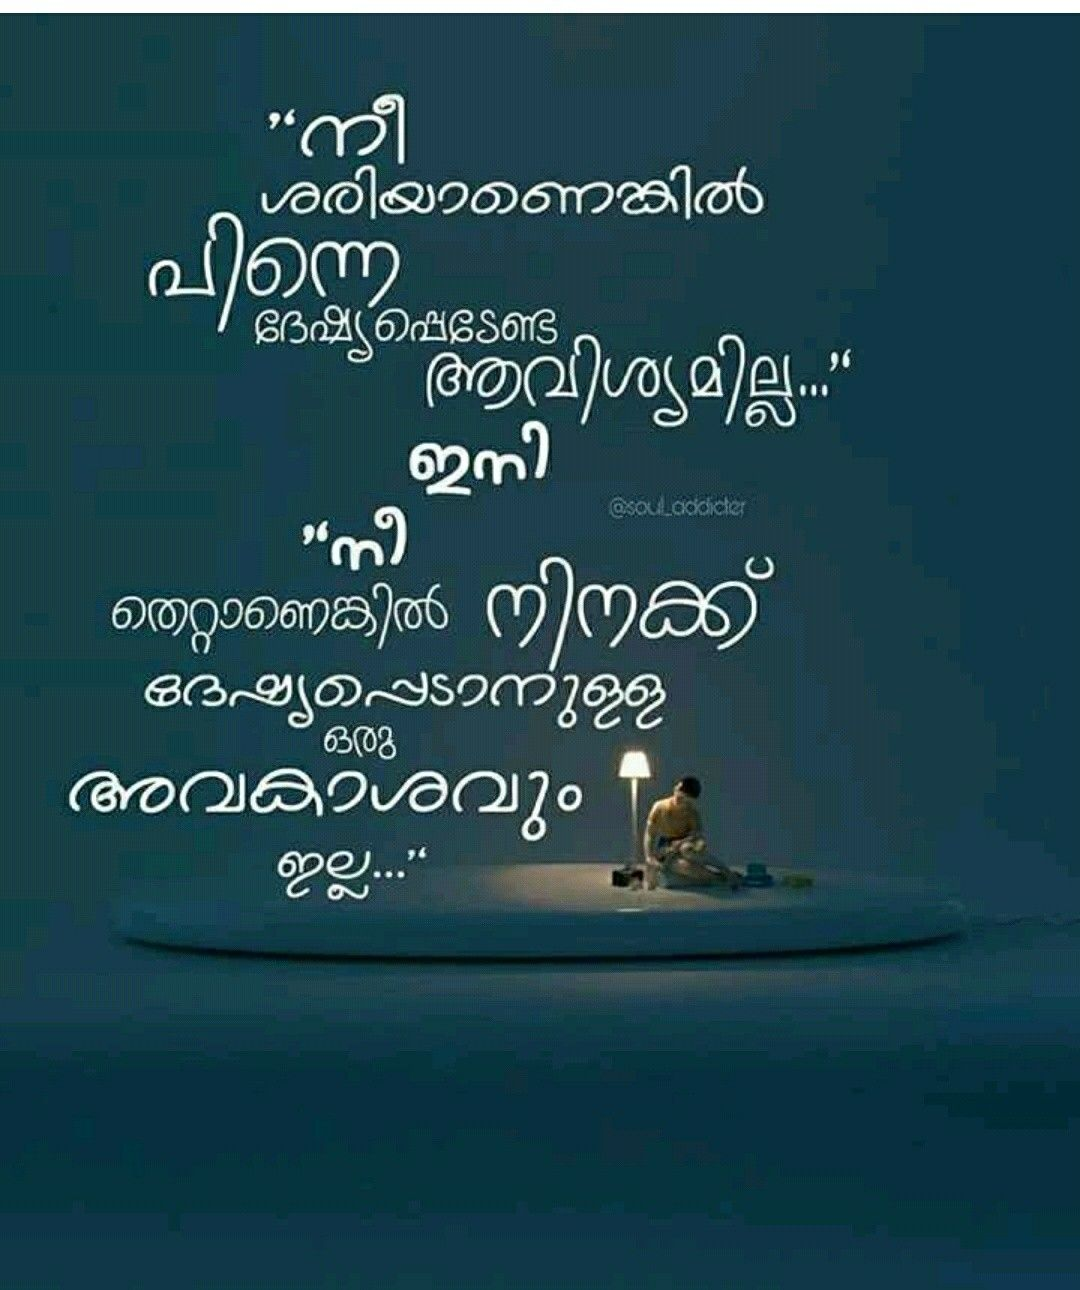 170 Anu Ideas Malayalam Quotes Quotes Life Quotes Best selfish quotes with images.inspire you not to be selfish i know that love is real when it's not convenient, when it's not selfish, when it's challenged. 170 anu ideas malayalam quotes